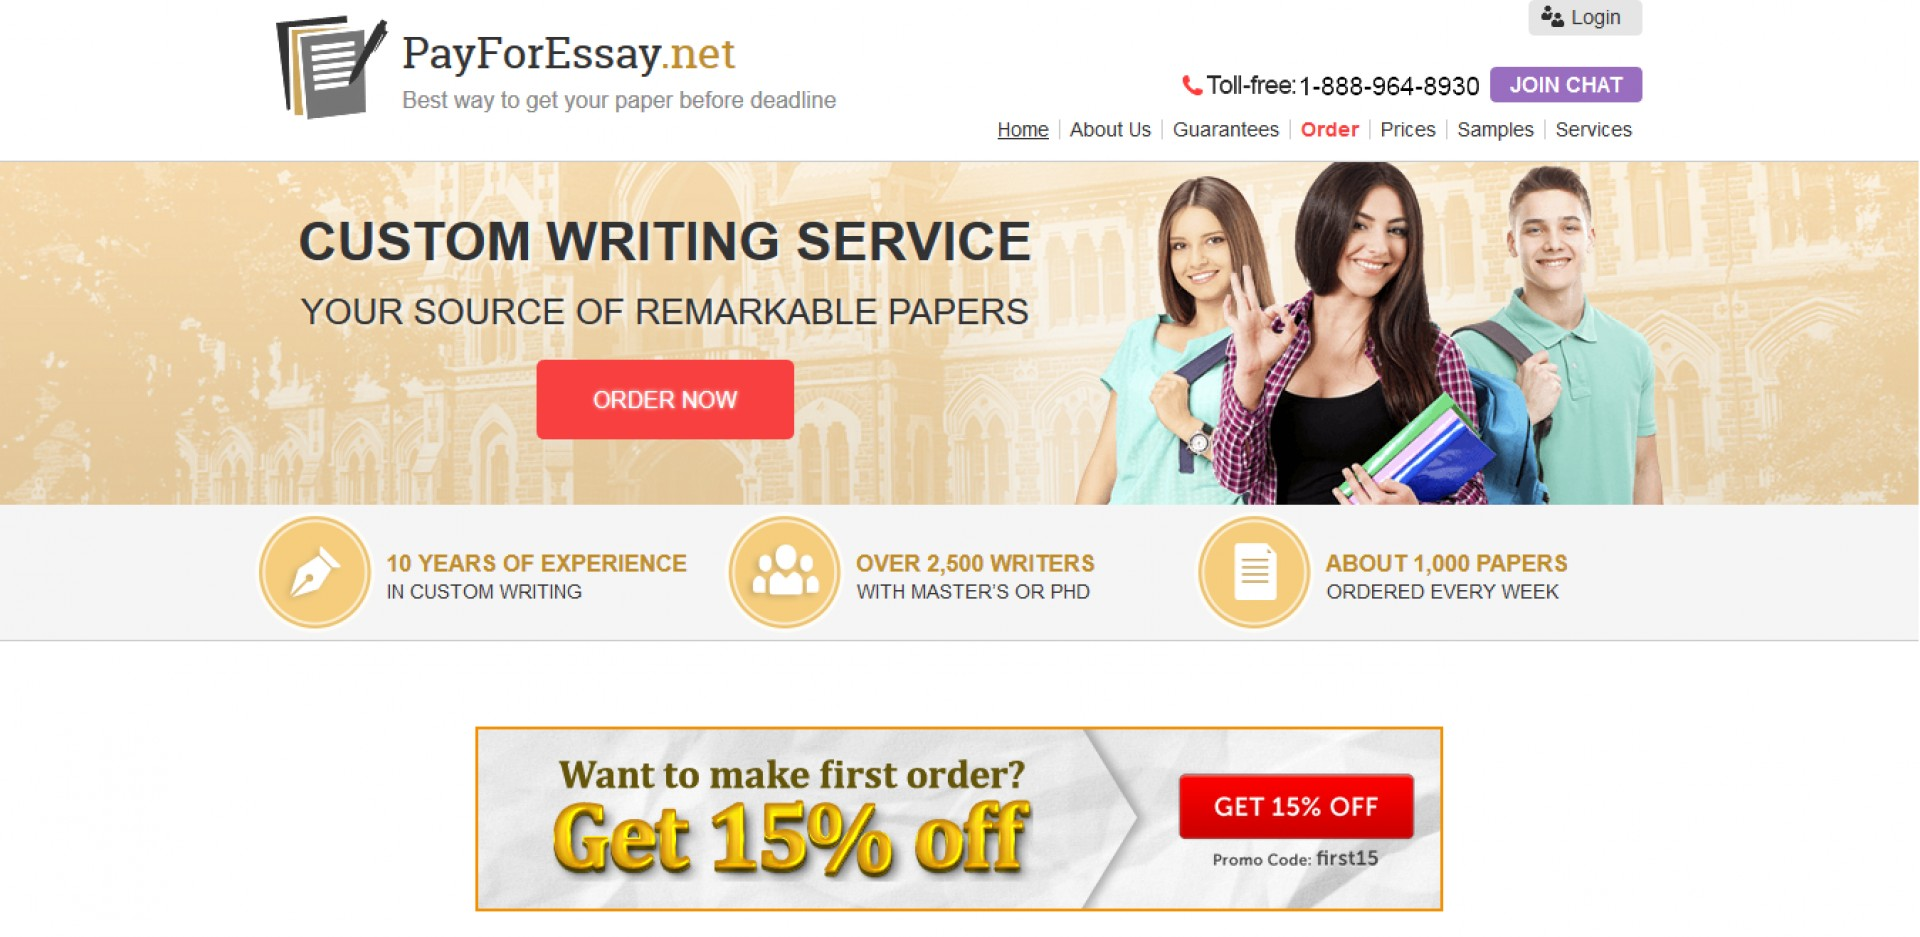 006 Pay For Essay Reviews Payforessay Stupendous Essay.net 1920